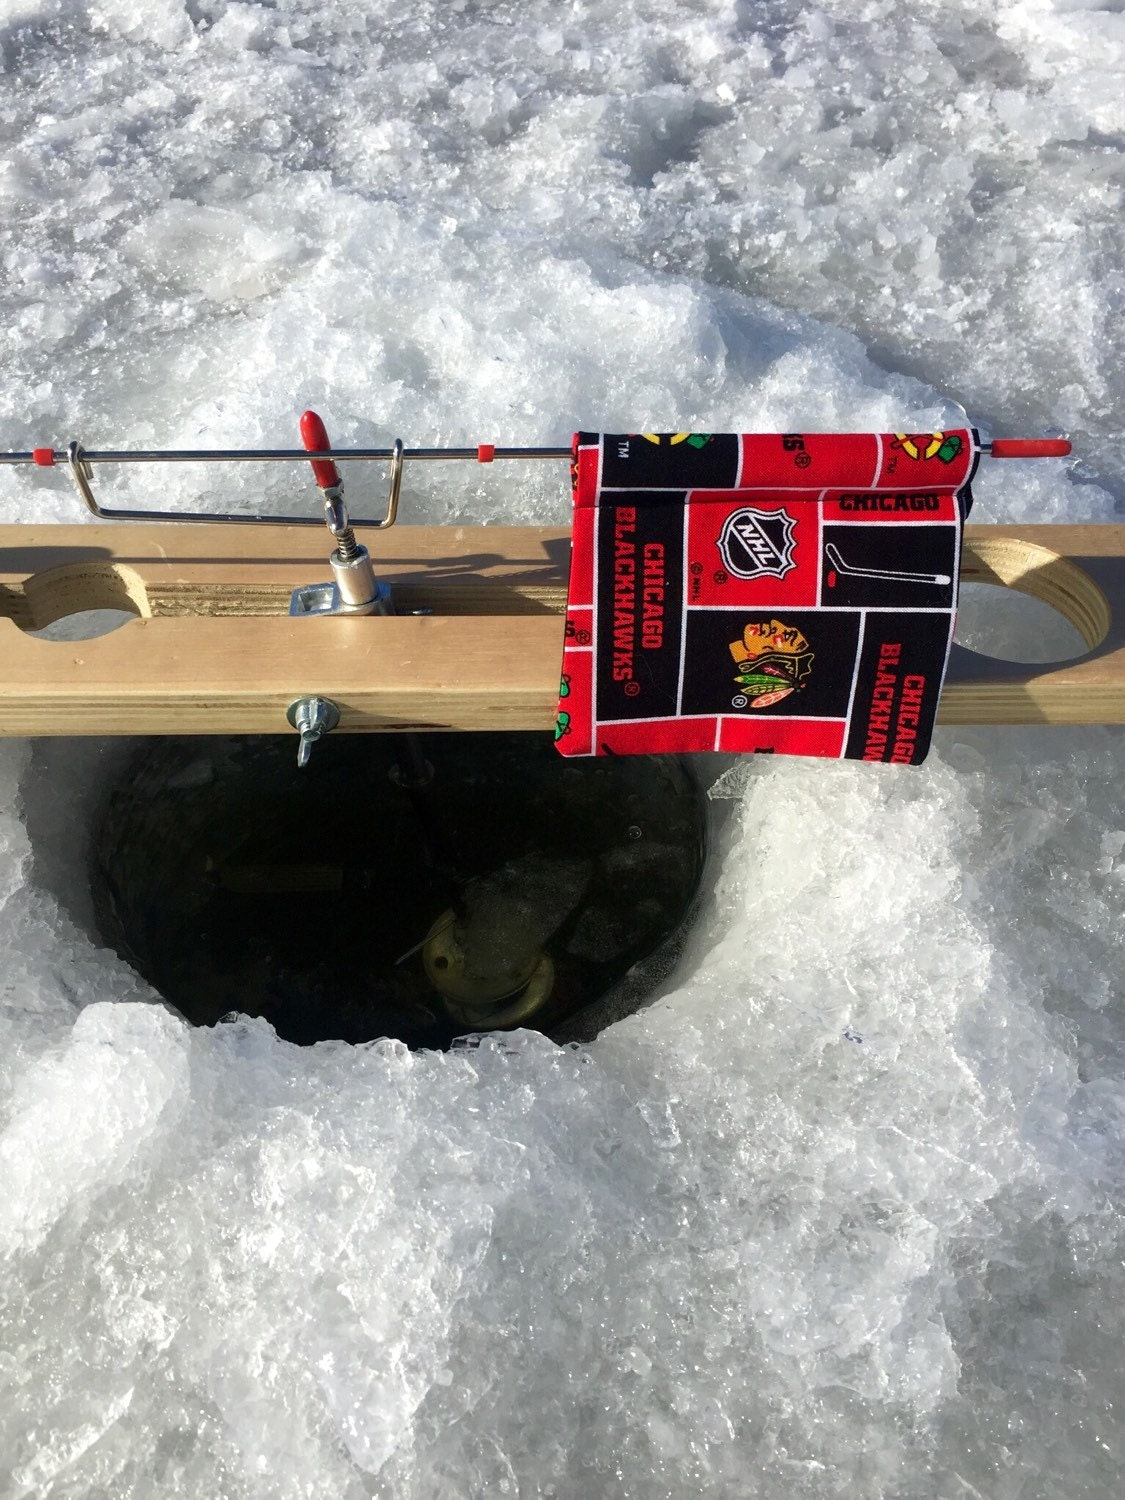 Ice fishing tip up flags for Best ice fishing tip ups